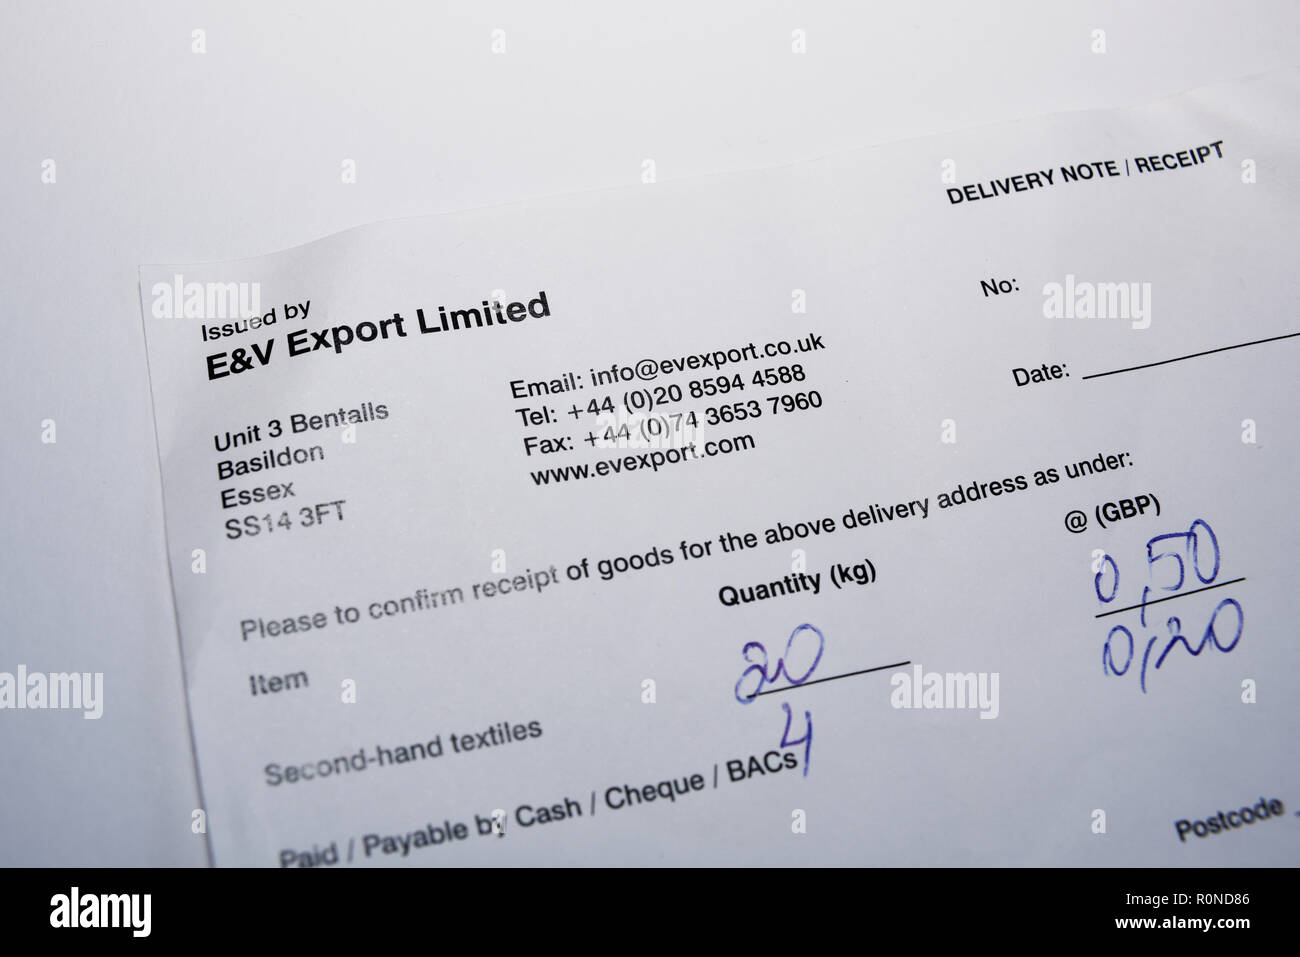 ff78c065f9 Cash for clothes business E V Export Limited. Delivery note receipt for  second hand textiles